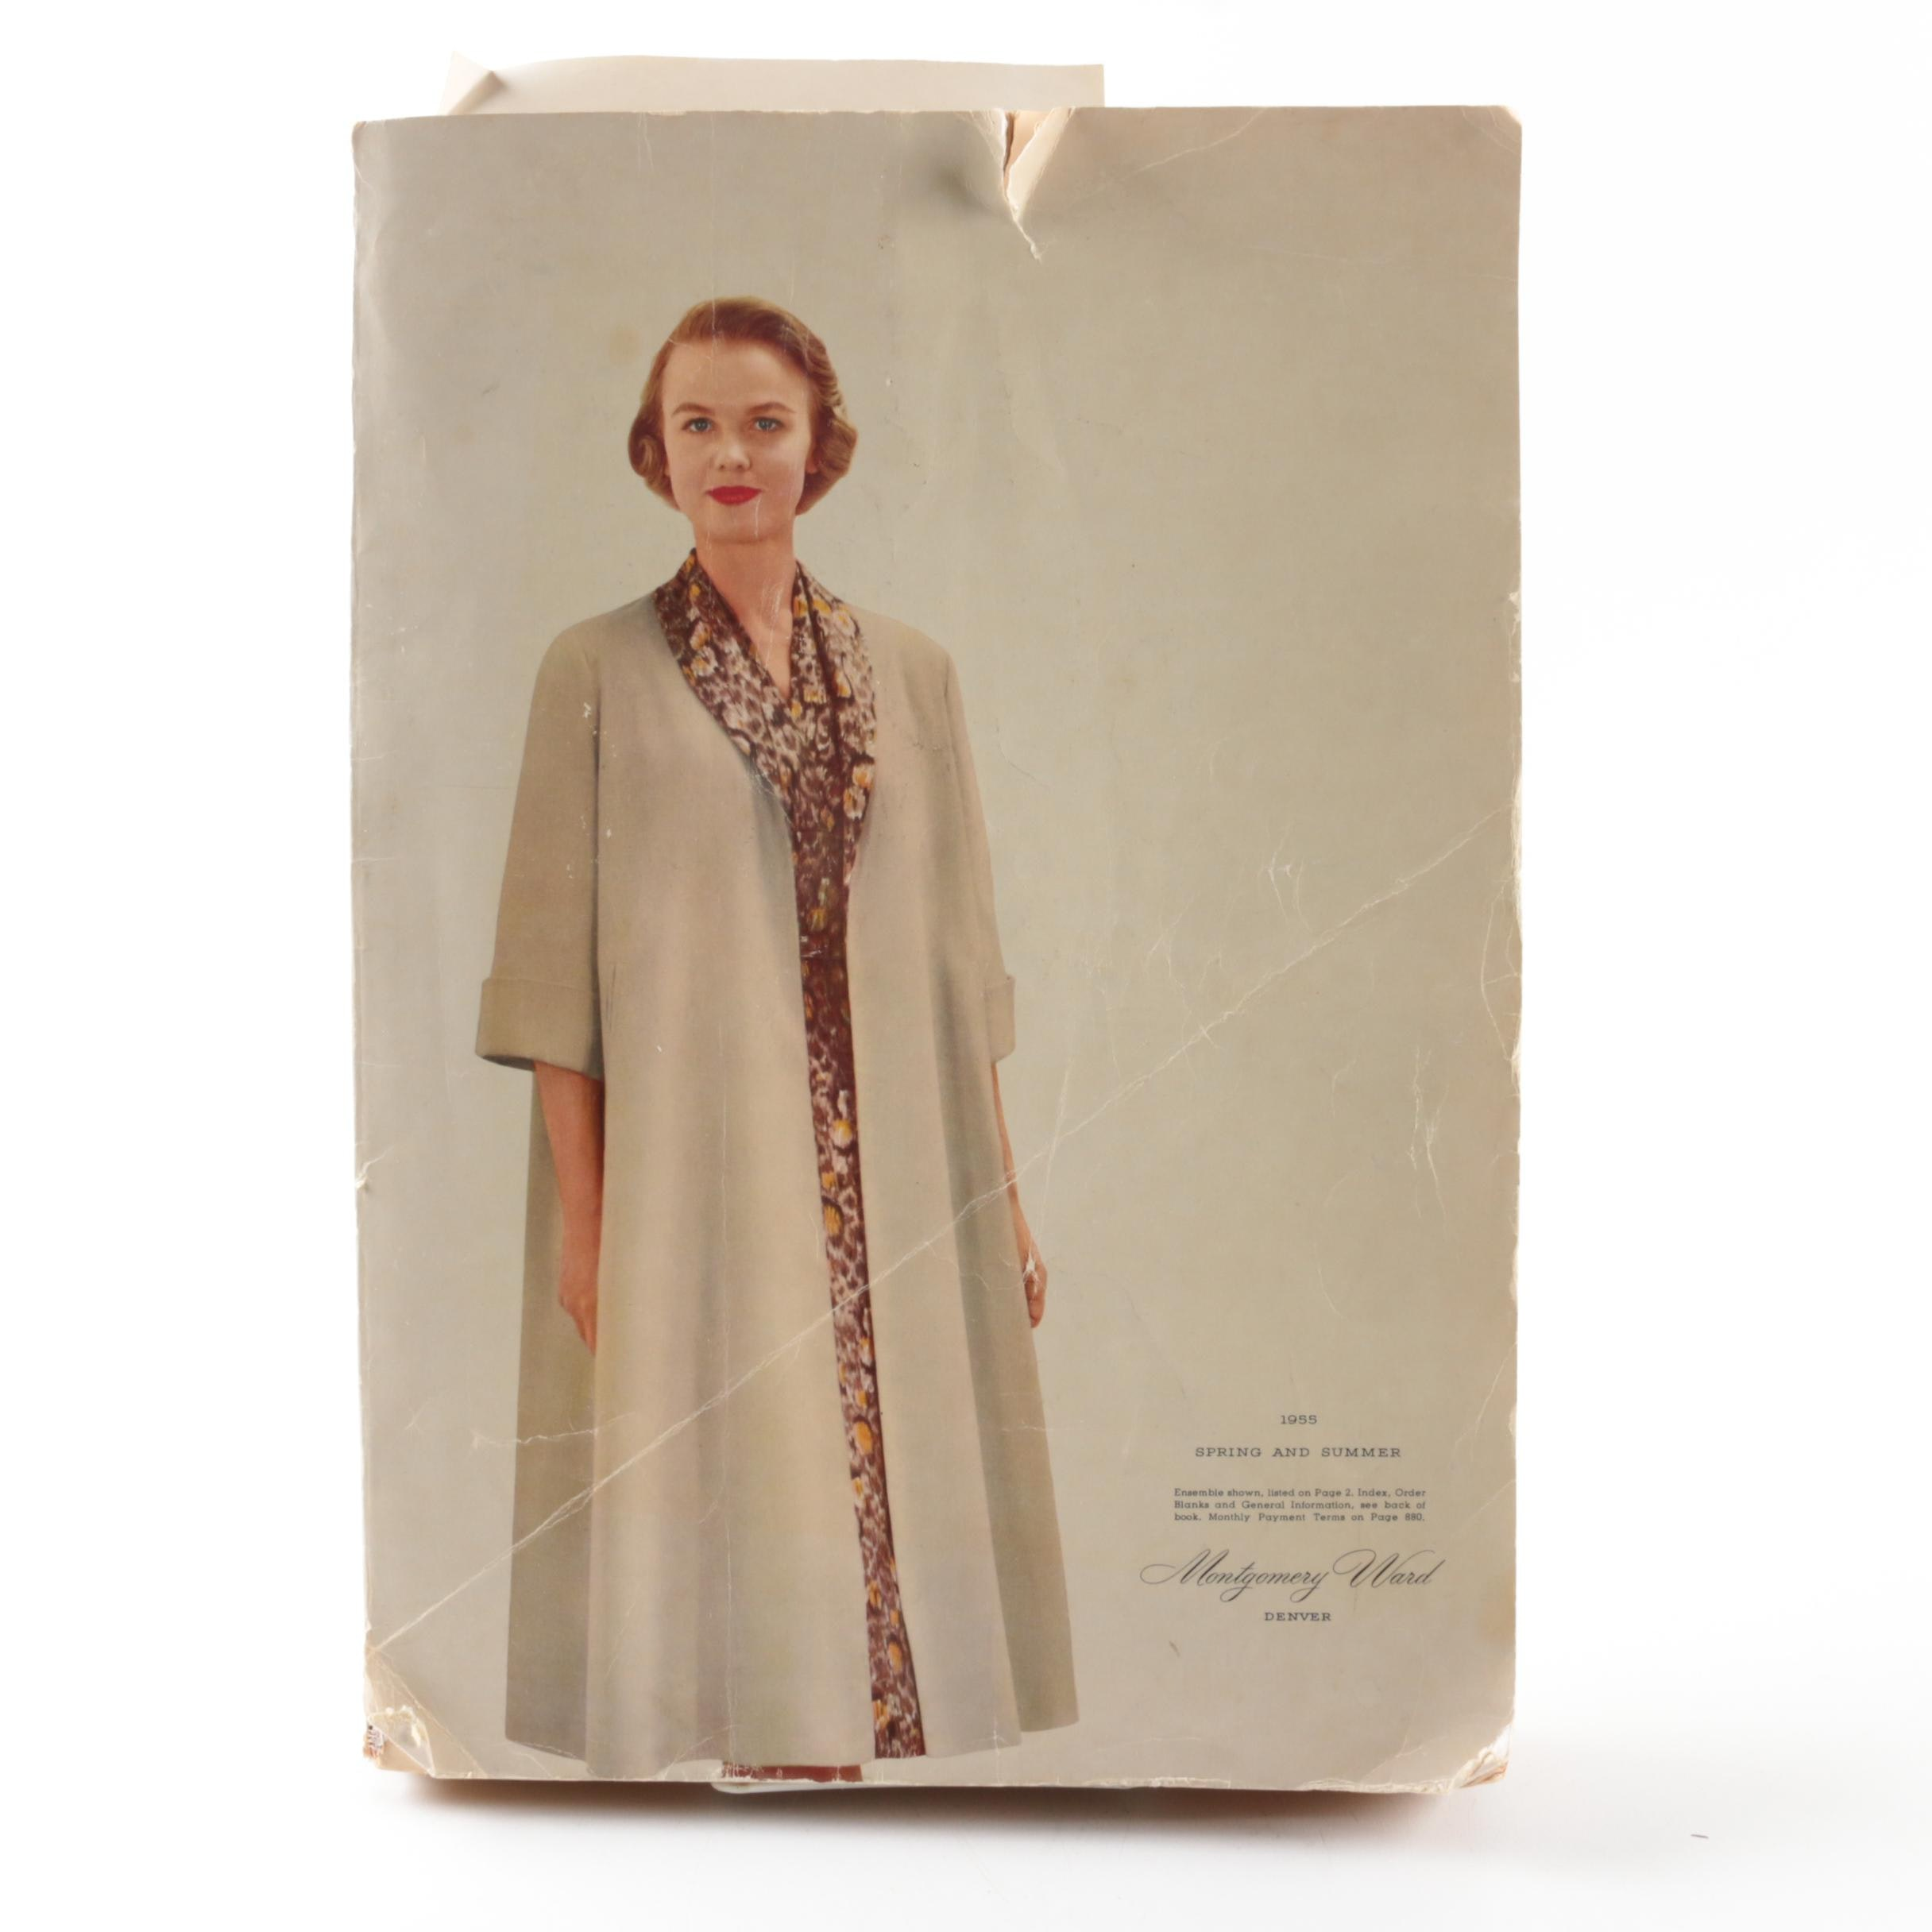 """1955 """"Montgomery Ward"""" Catalog with Vintage Advertisements"""